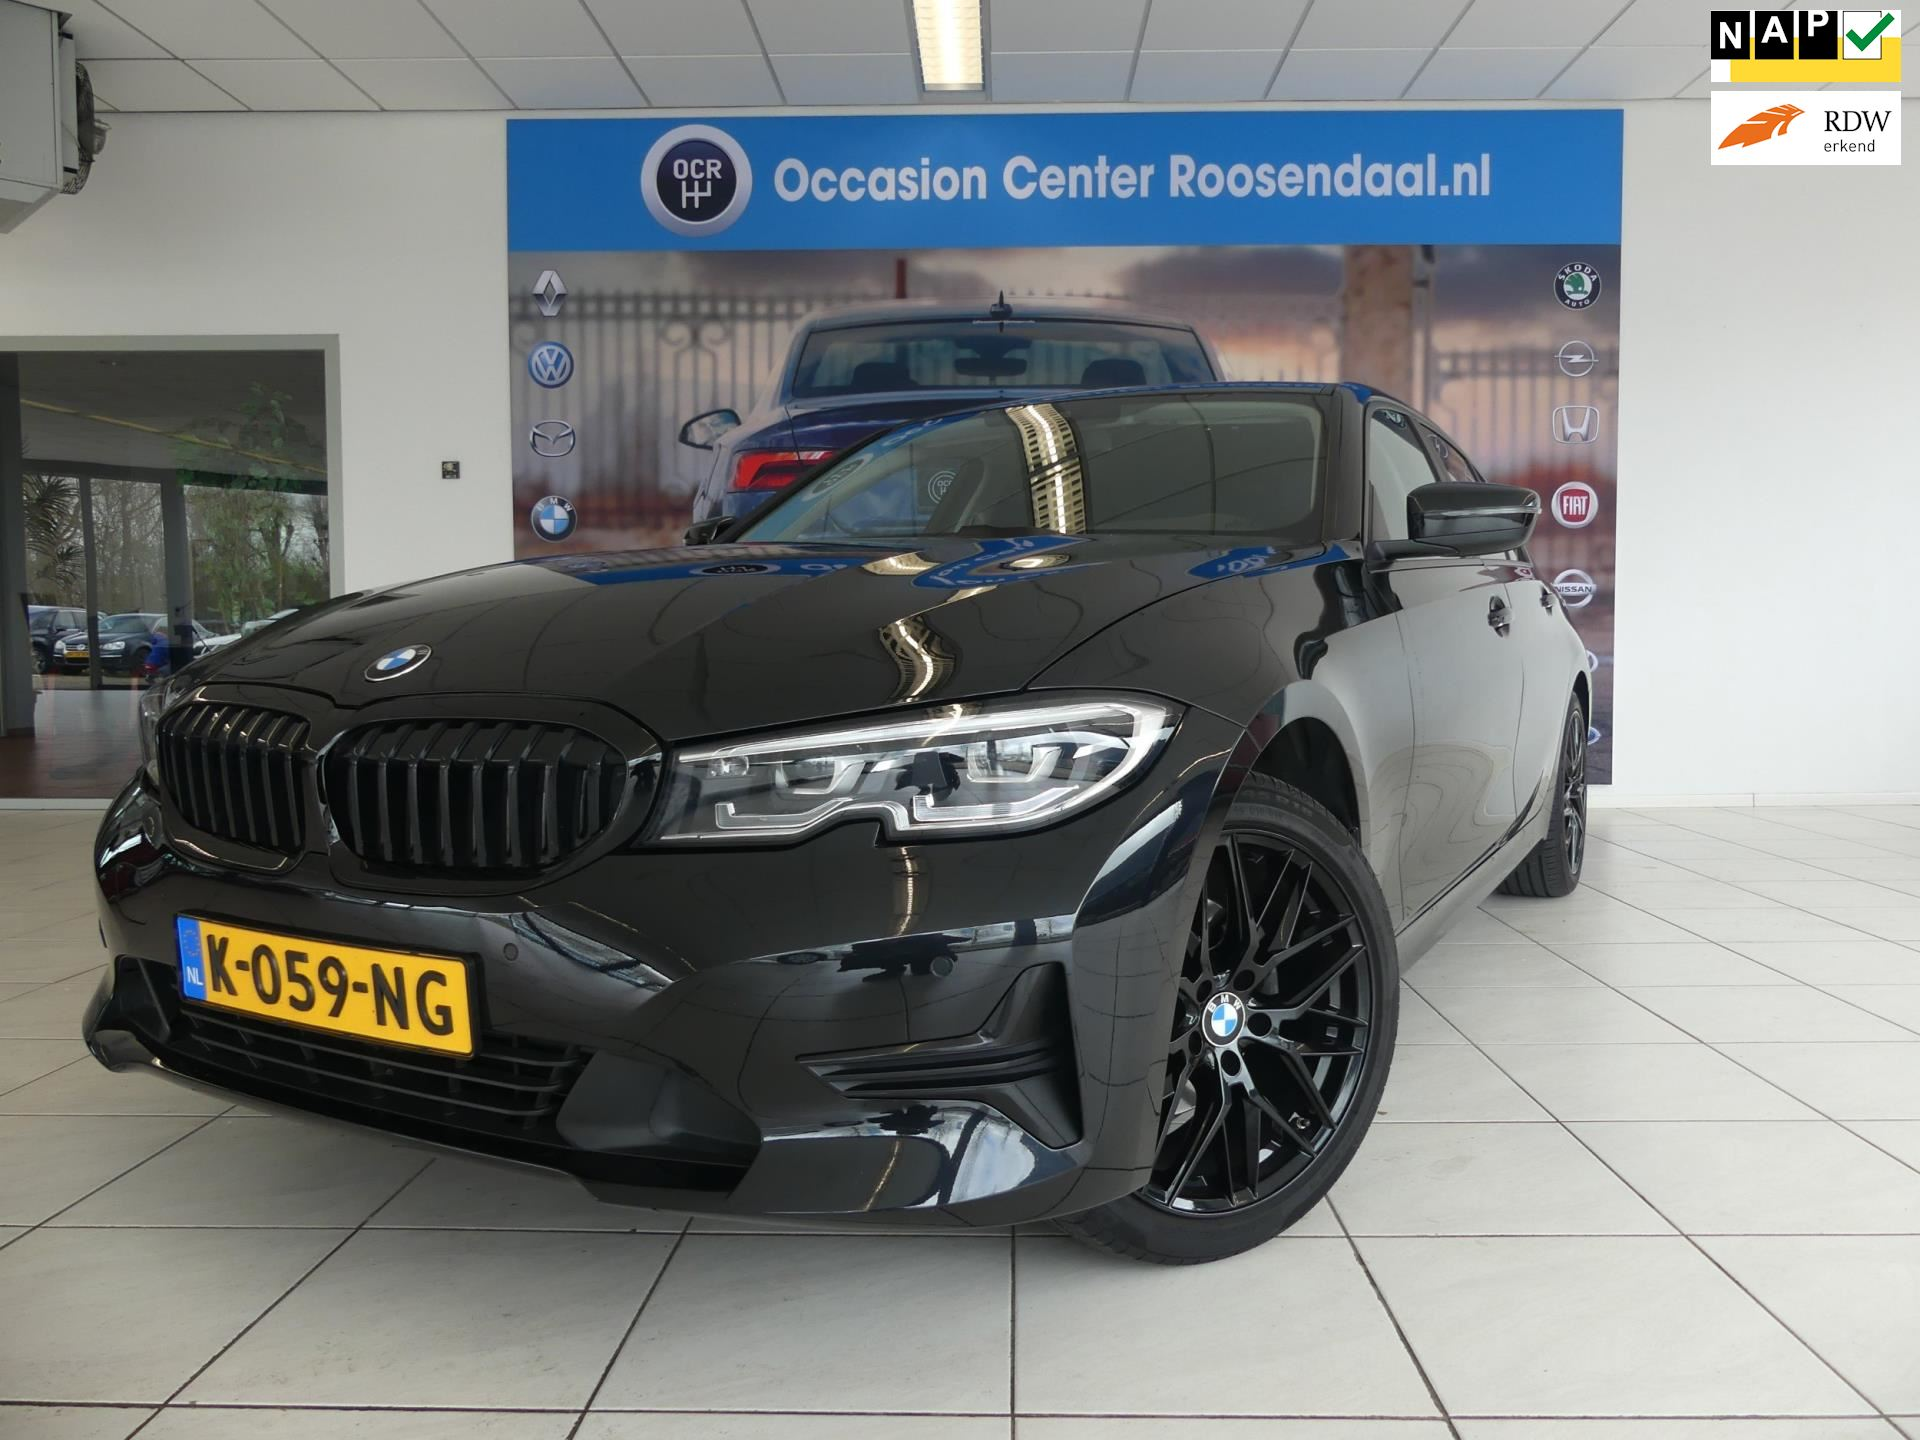 BMW 3-serie occasion - Occasion Center Roosendaal